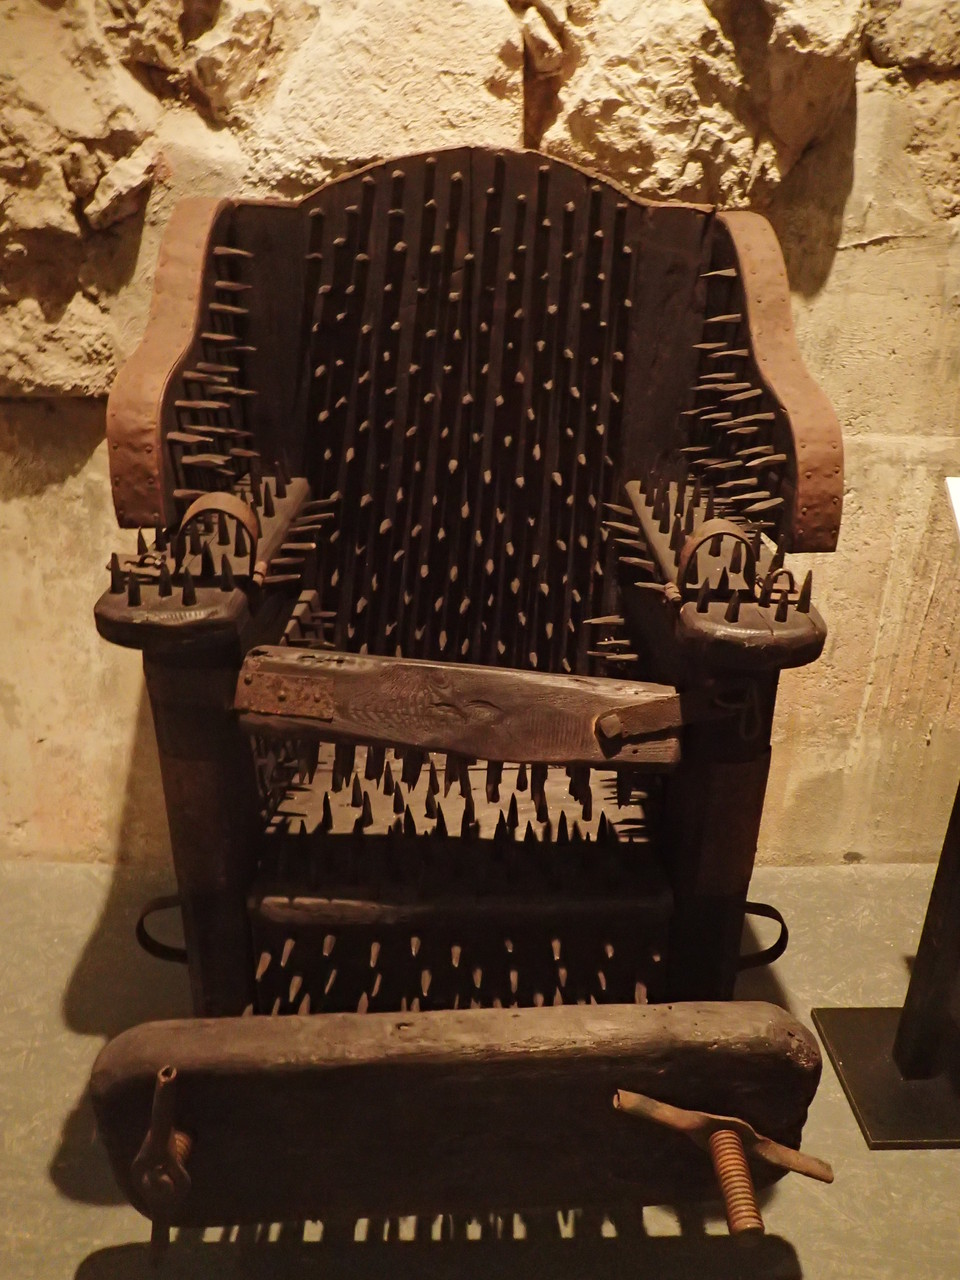 Interrogation chair at the torture museum